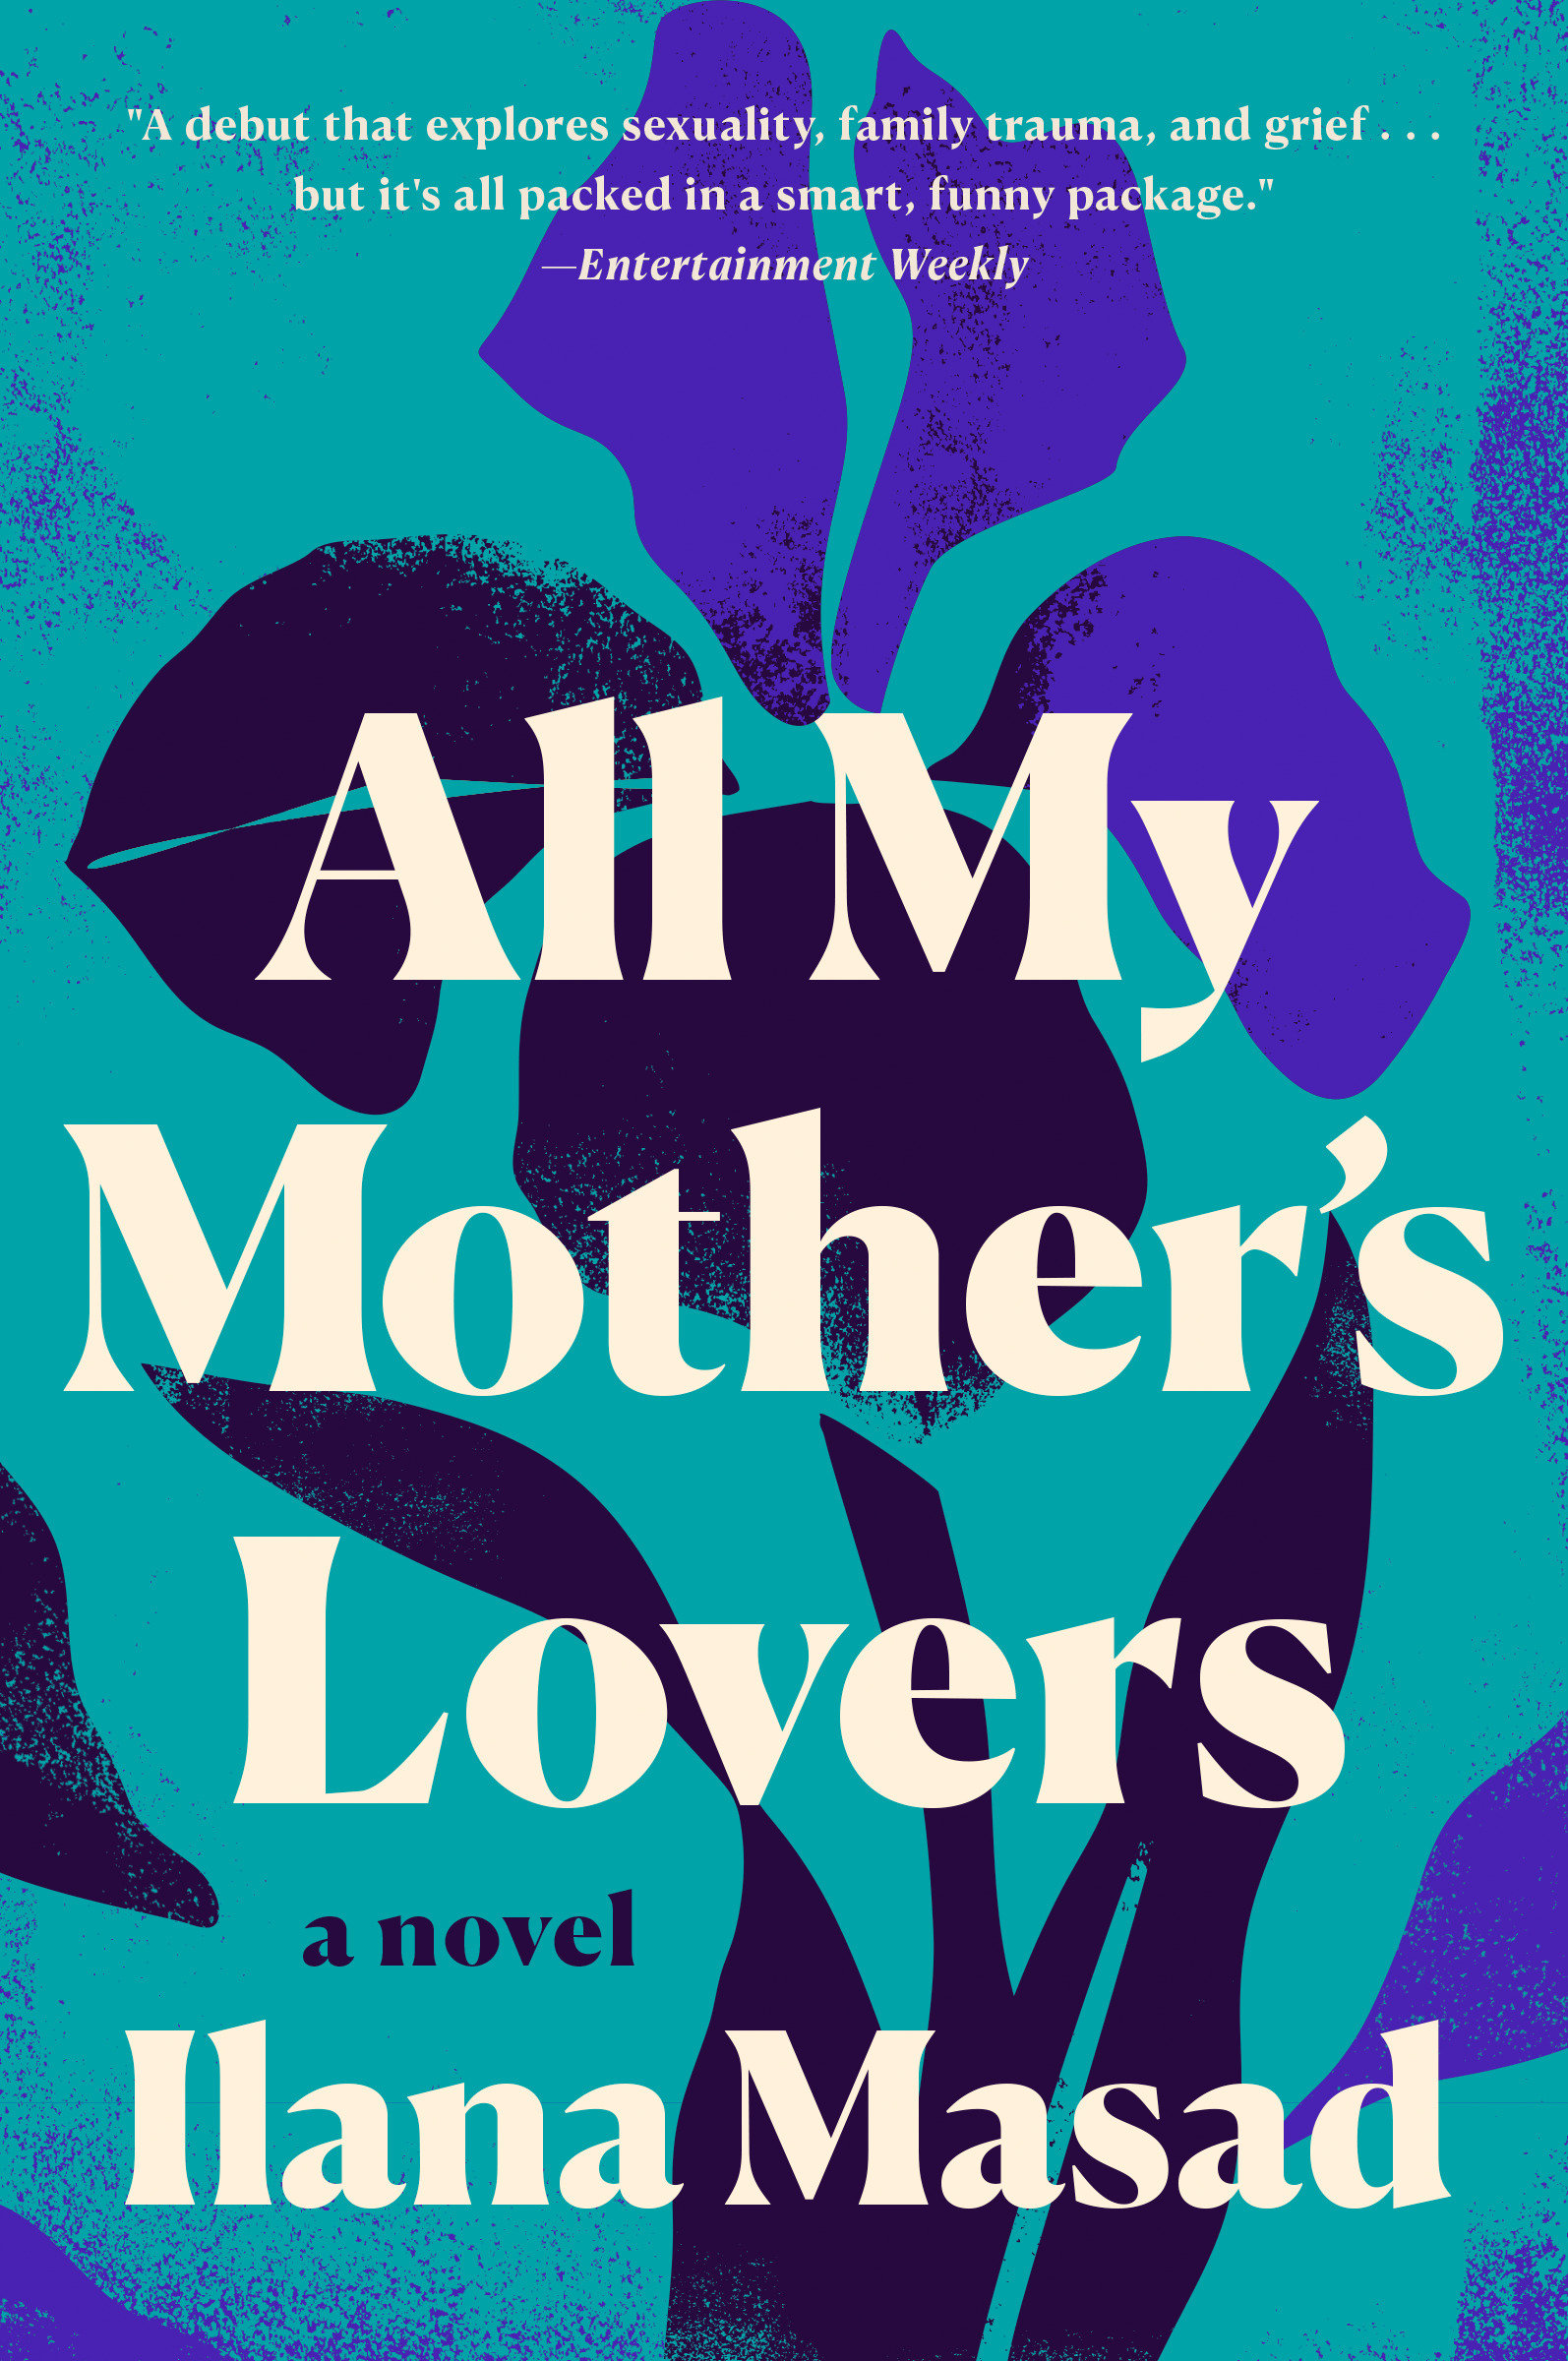 All My Mother's Lovers A Novel